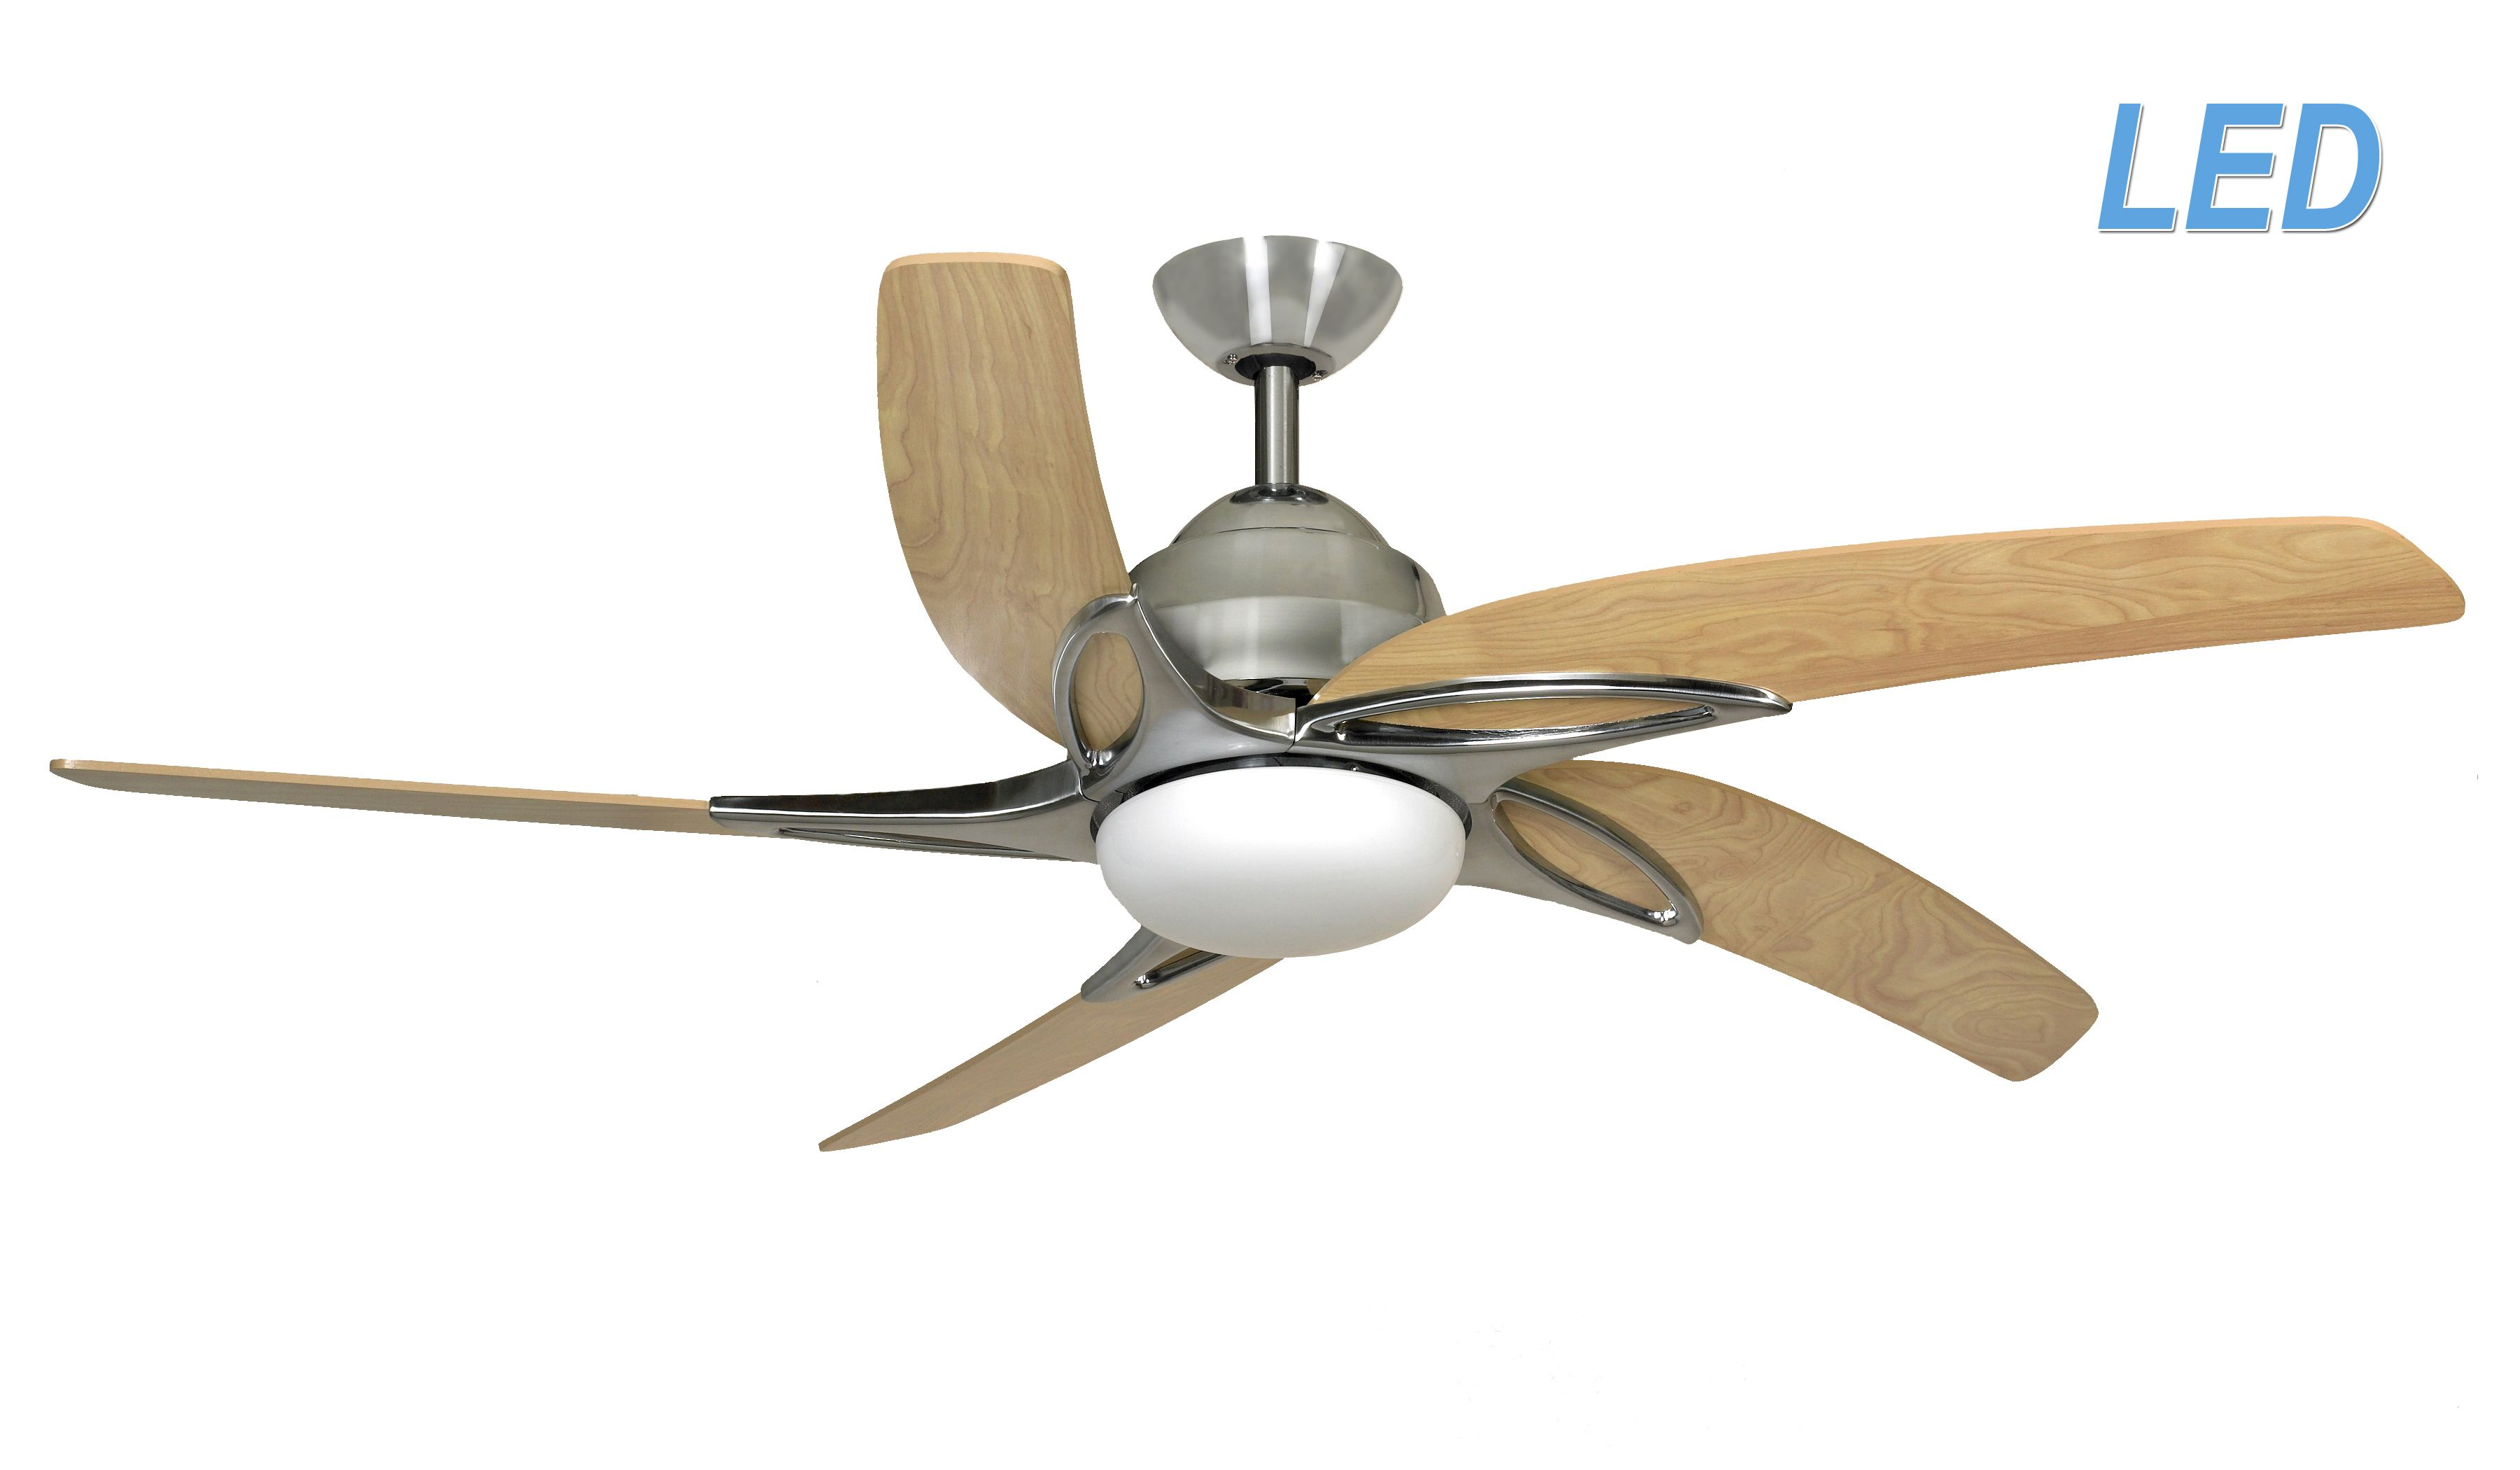 Fantasia viper 54 stainless steel ceiling fan remote control led fantasia viper 54 stainless steel ceiling fan remote control led light 115687 mozeypictures Choice Image